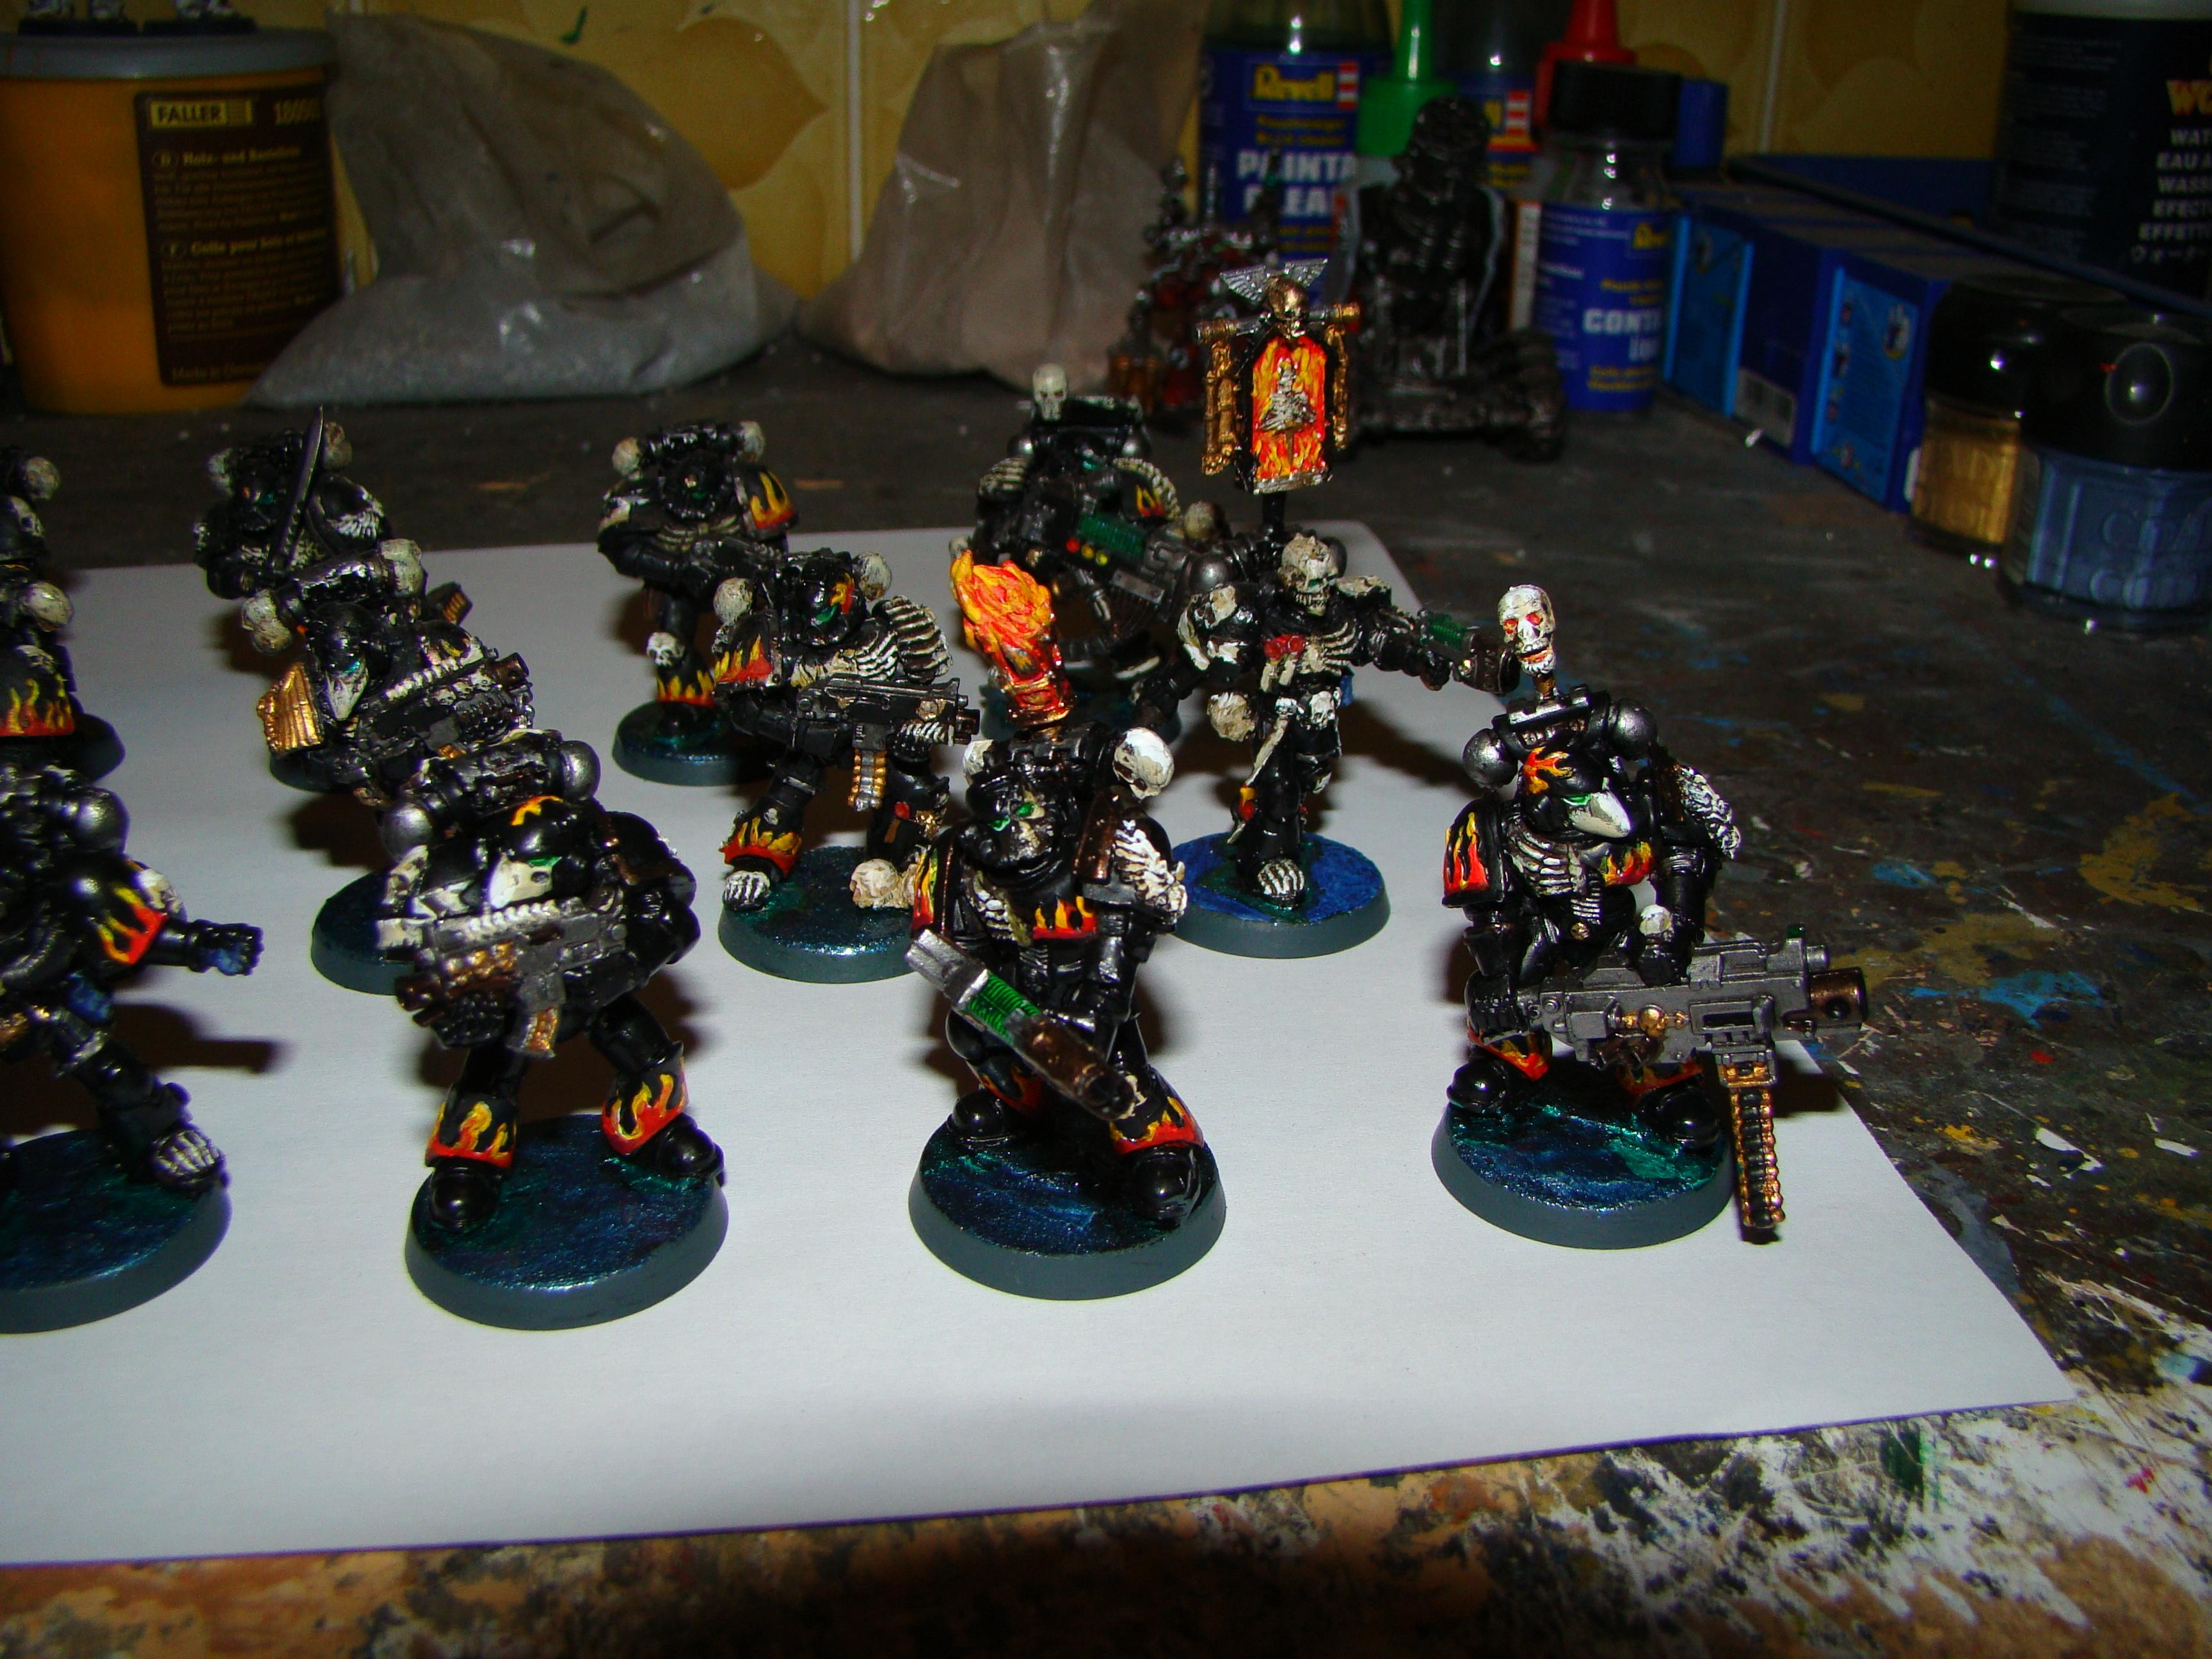 Legion Of The Damned, Space Marines, Warhammer 40,000